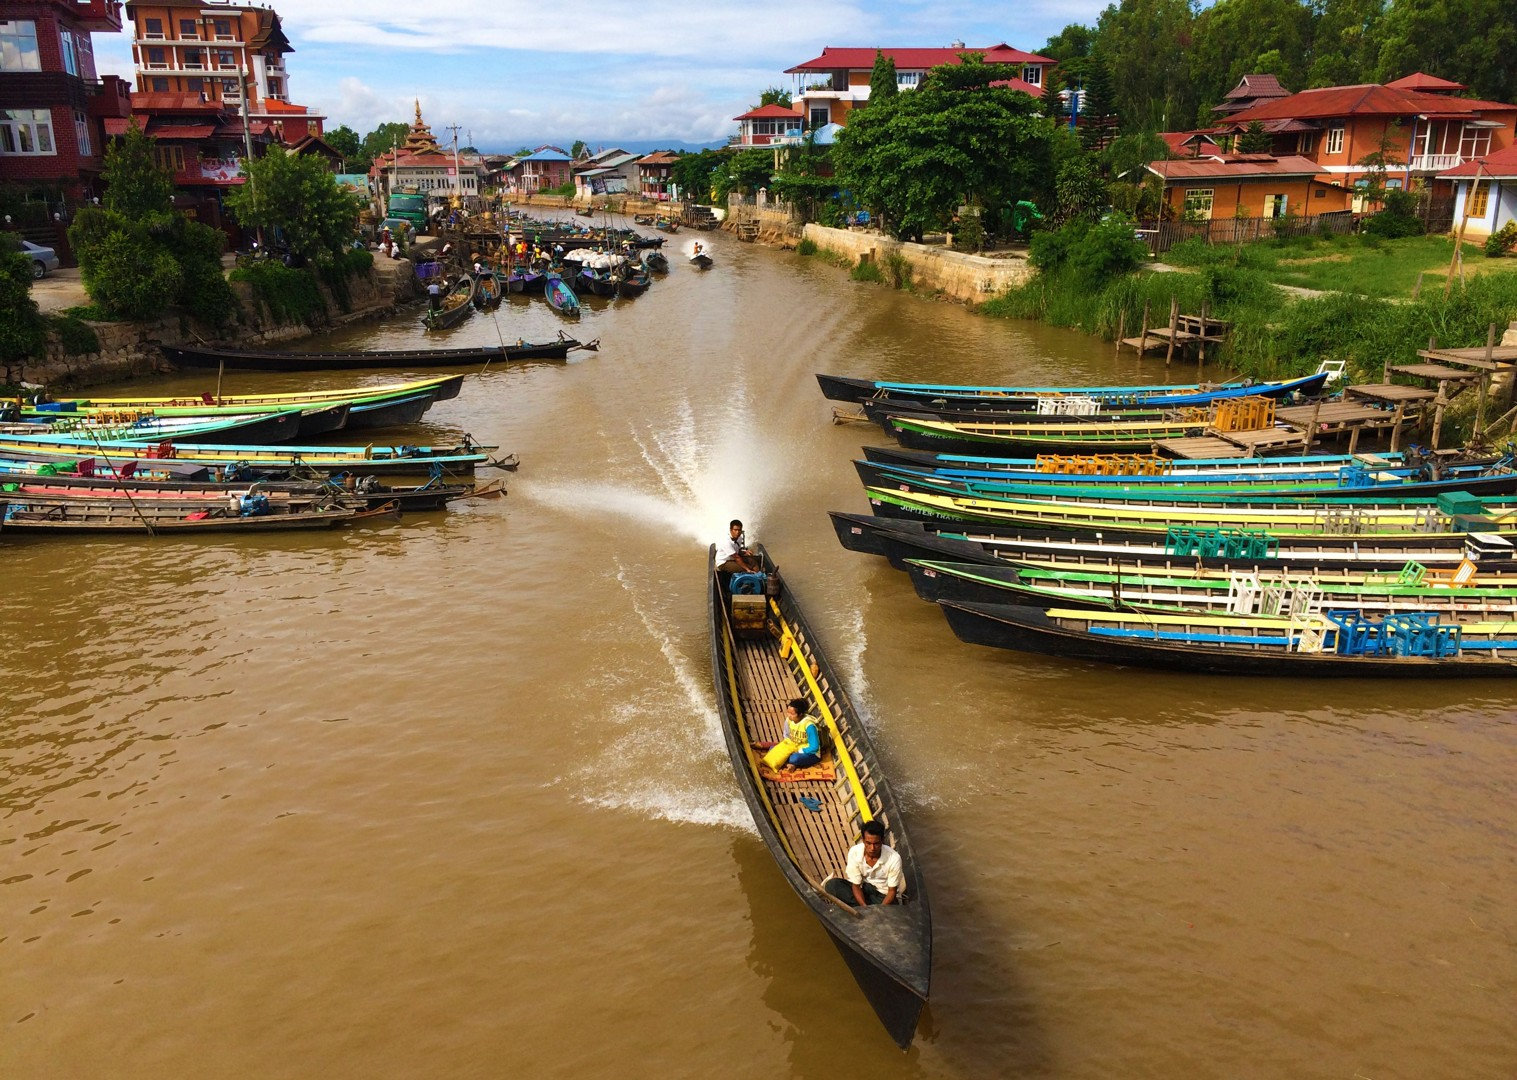 river-boats-guided-cycling-holiday-burma.jpg - Myanmar (Burma) - Bagan and Beyond - Cycling Adventures